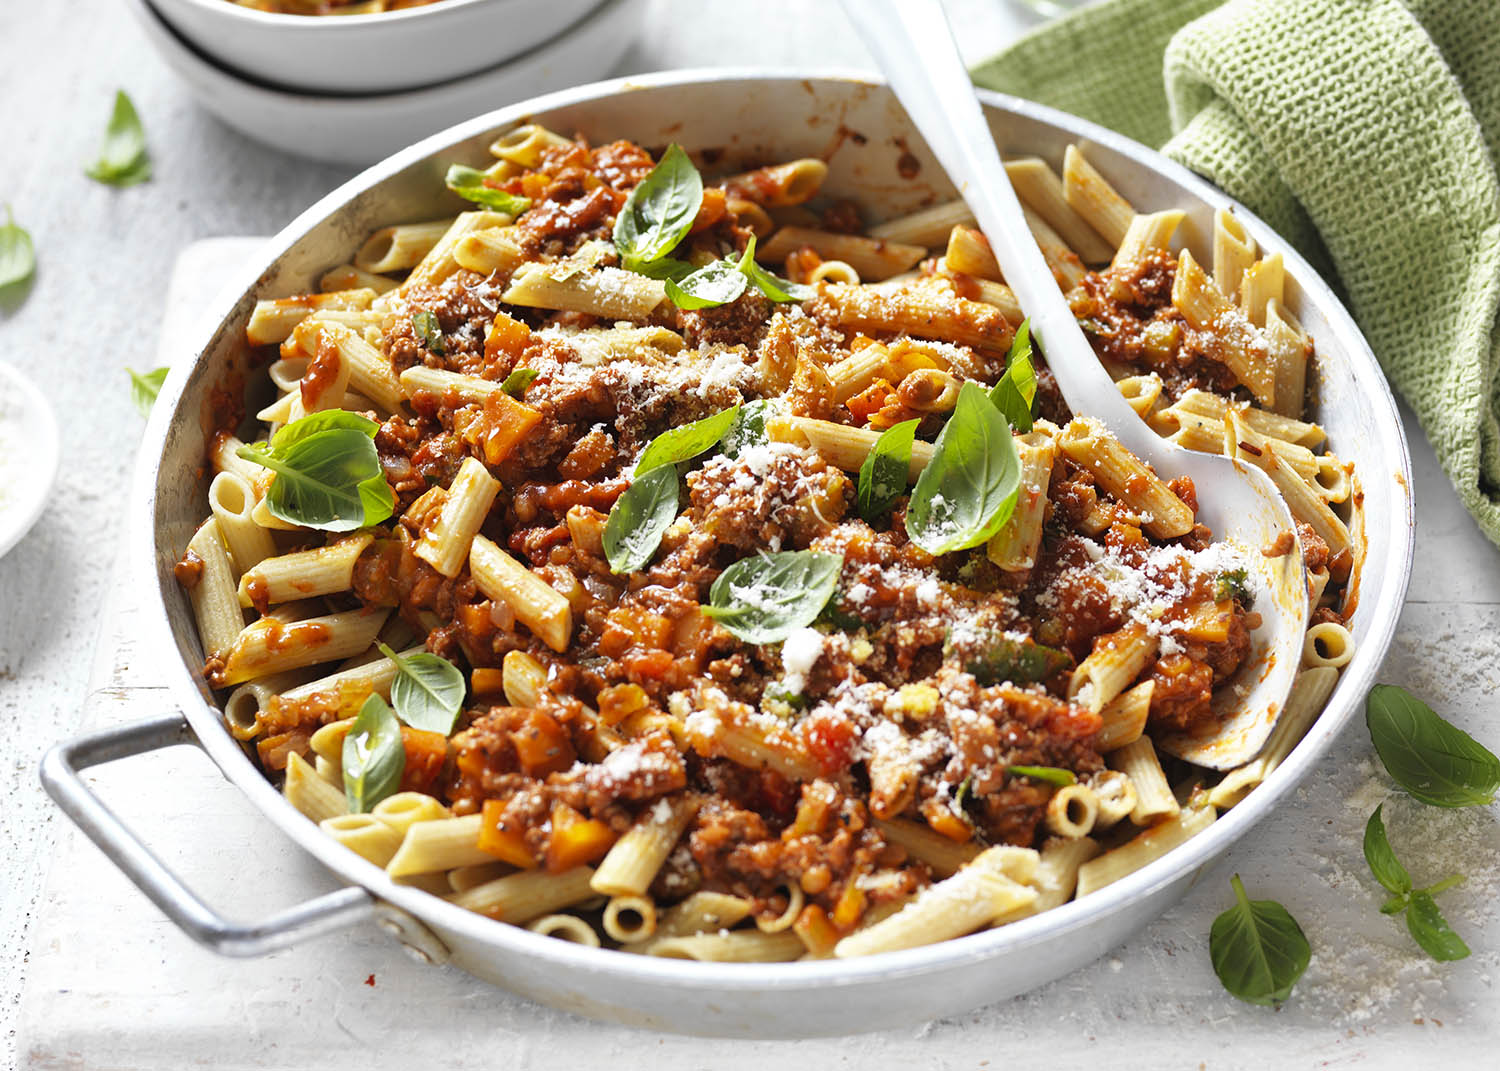 Penne bolognese by Celebrate Health